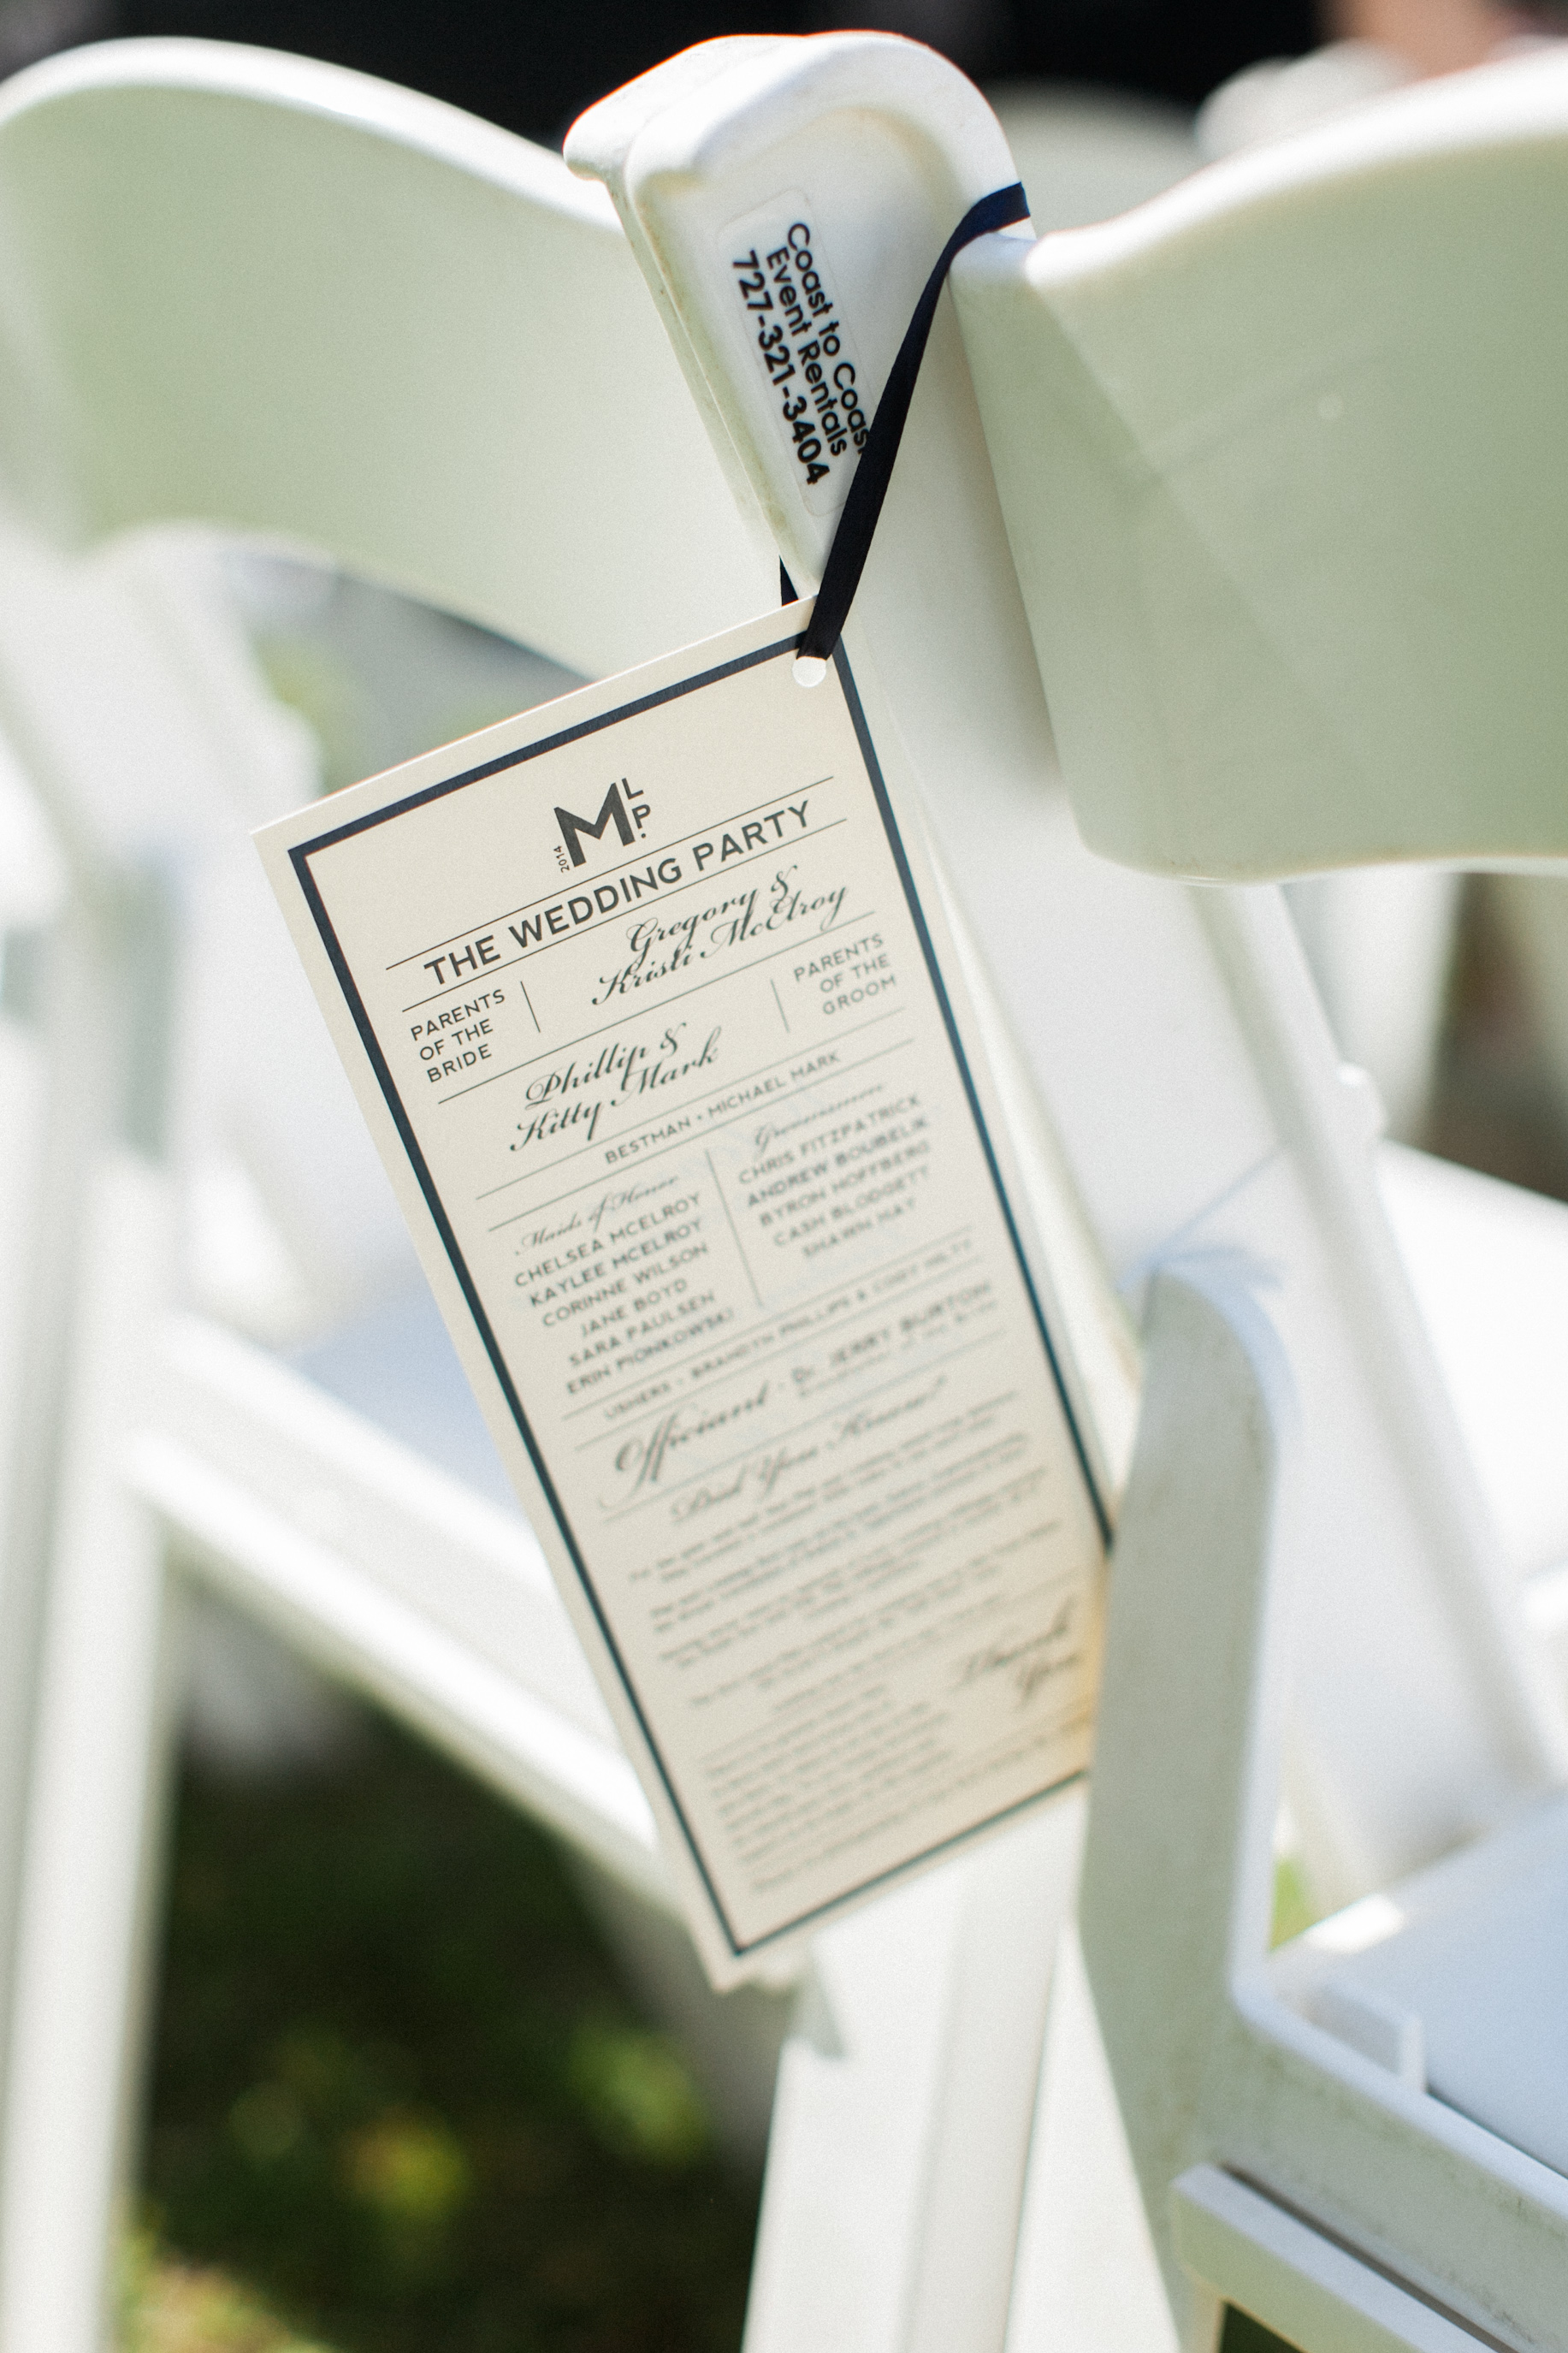 Our wedding programs that Phil made. I couldn't find exactly what I was looking for so he created them himself.